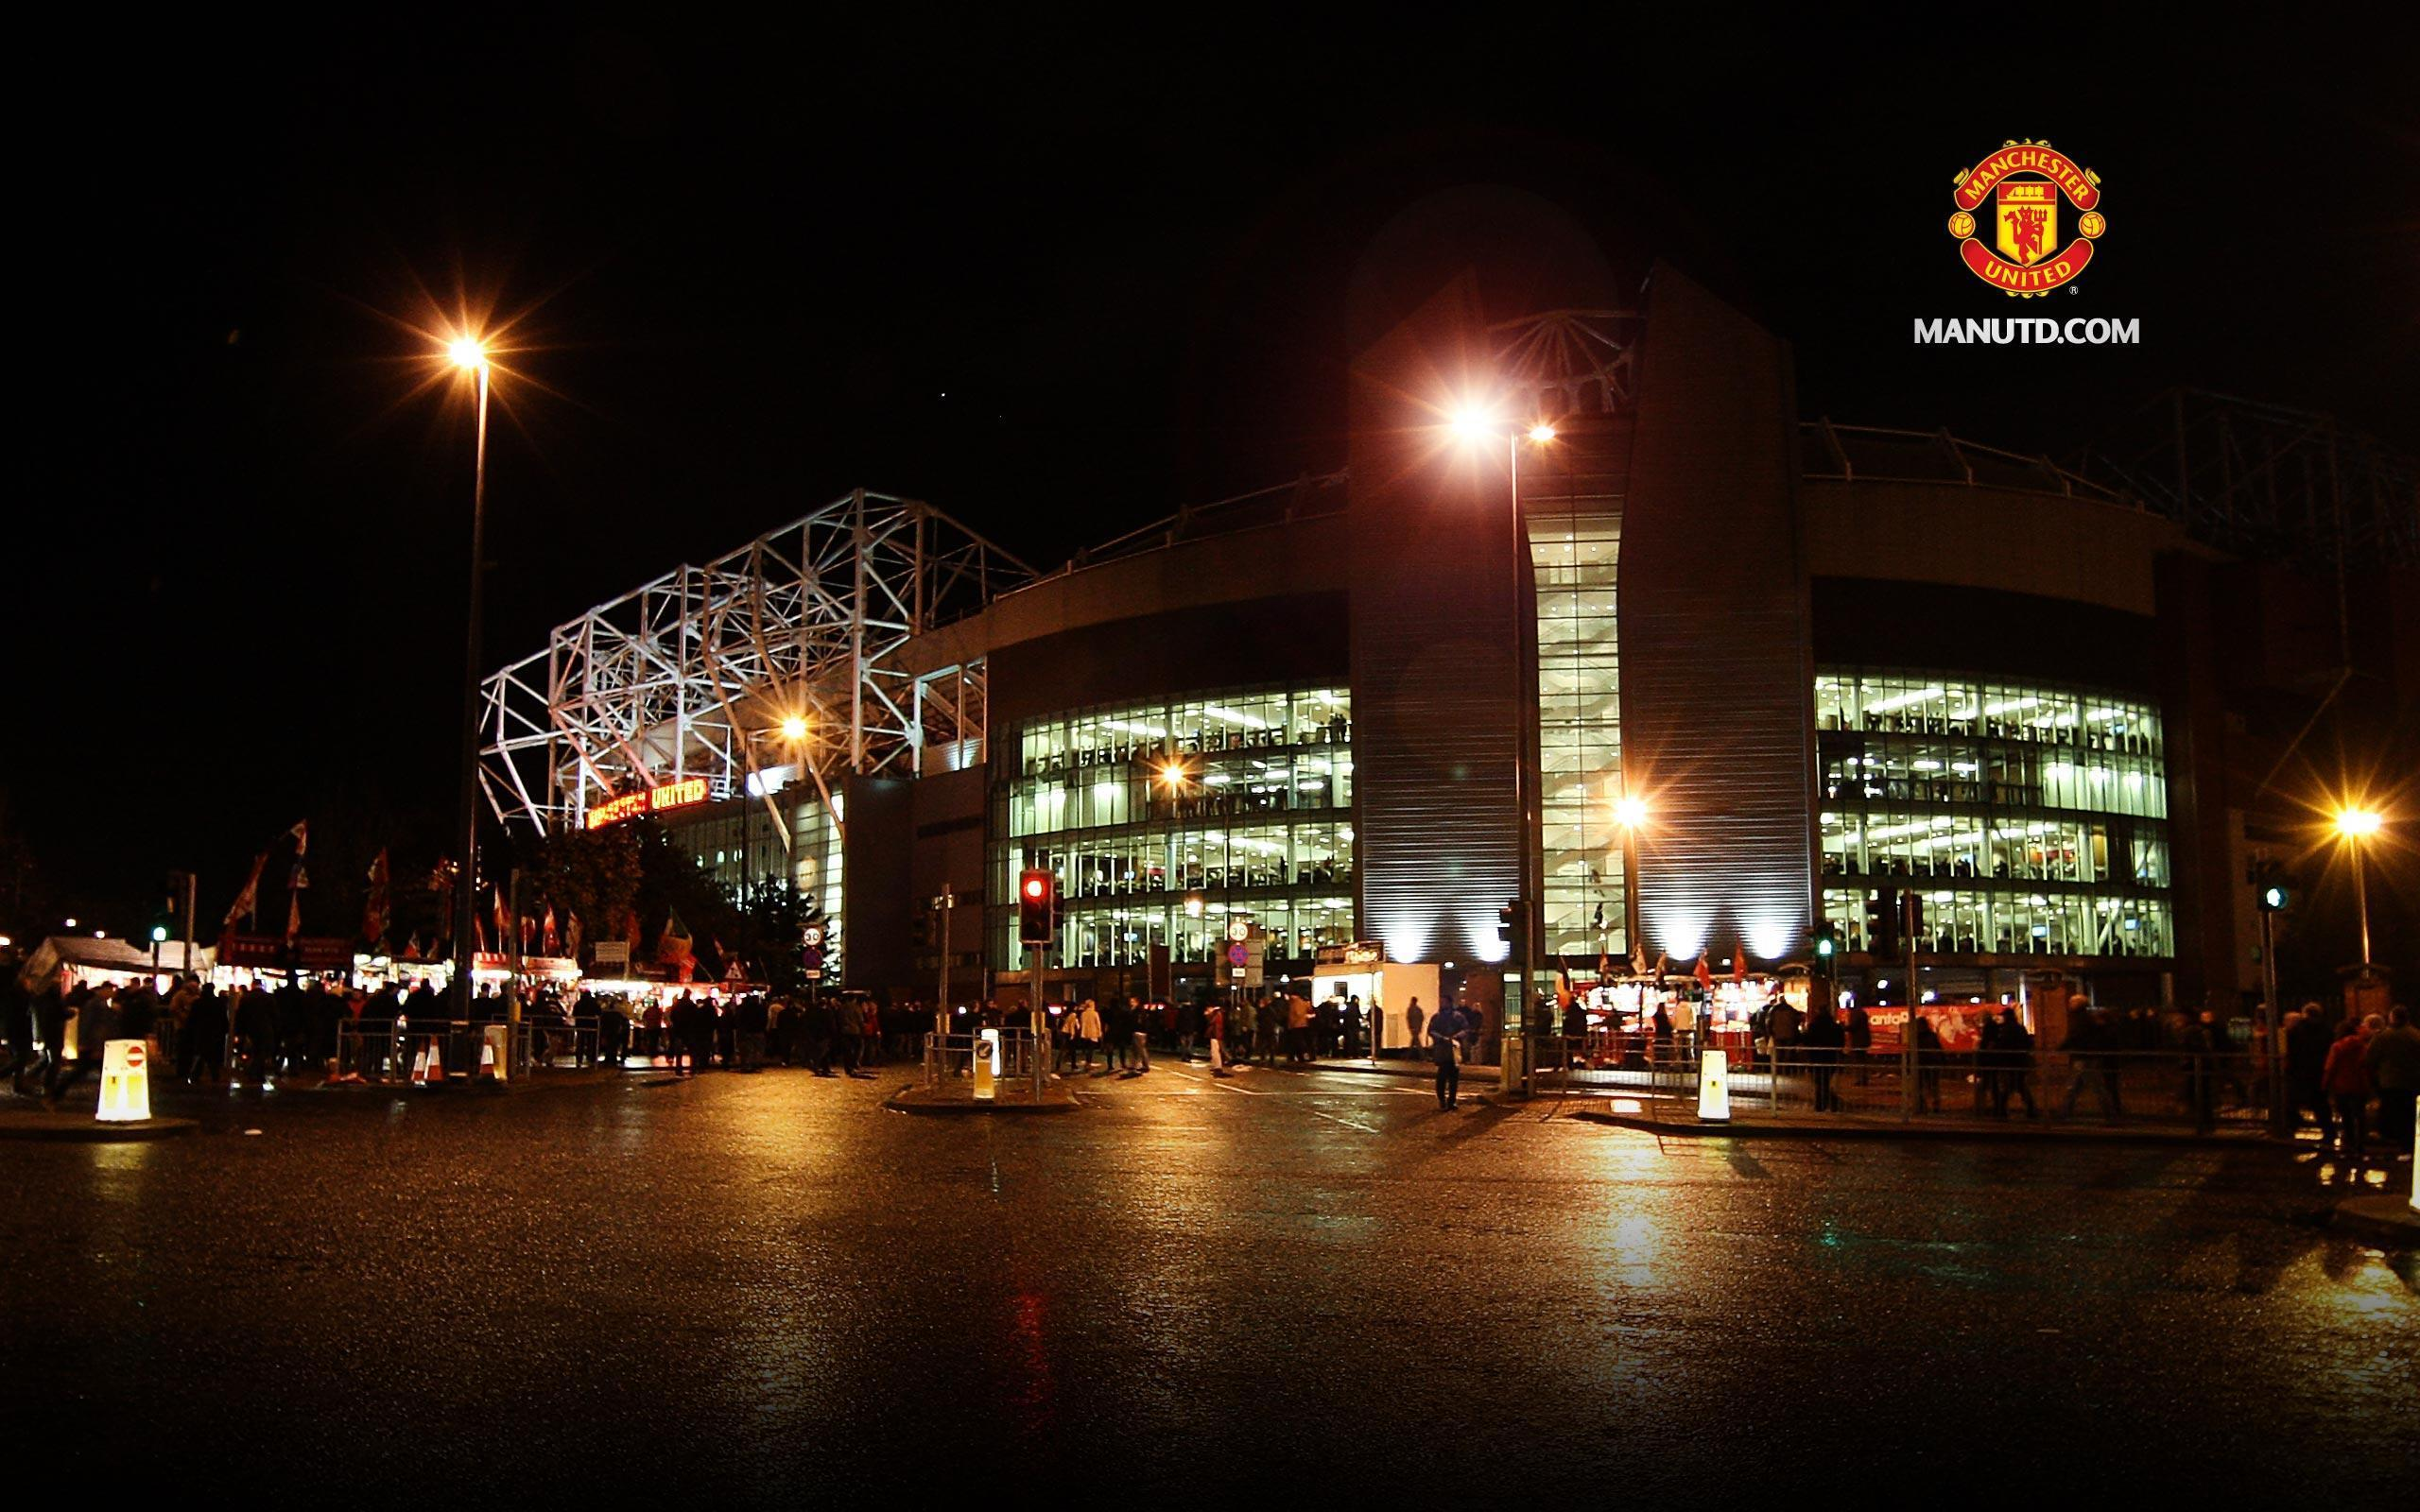 Manchester United Old Trafford Free 352x416 Wallpapers Download